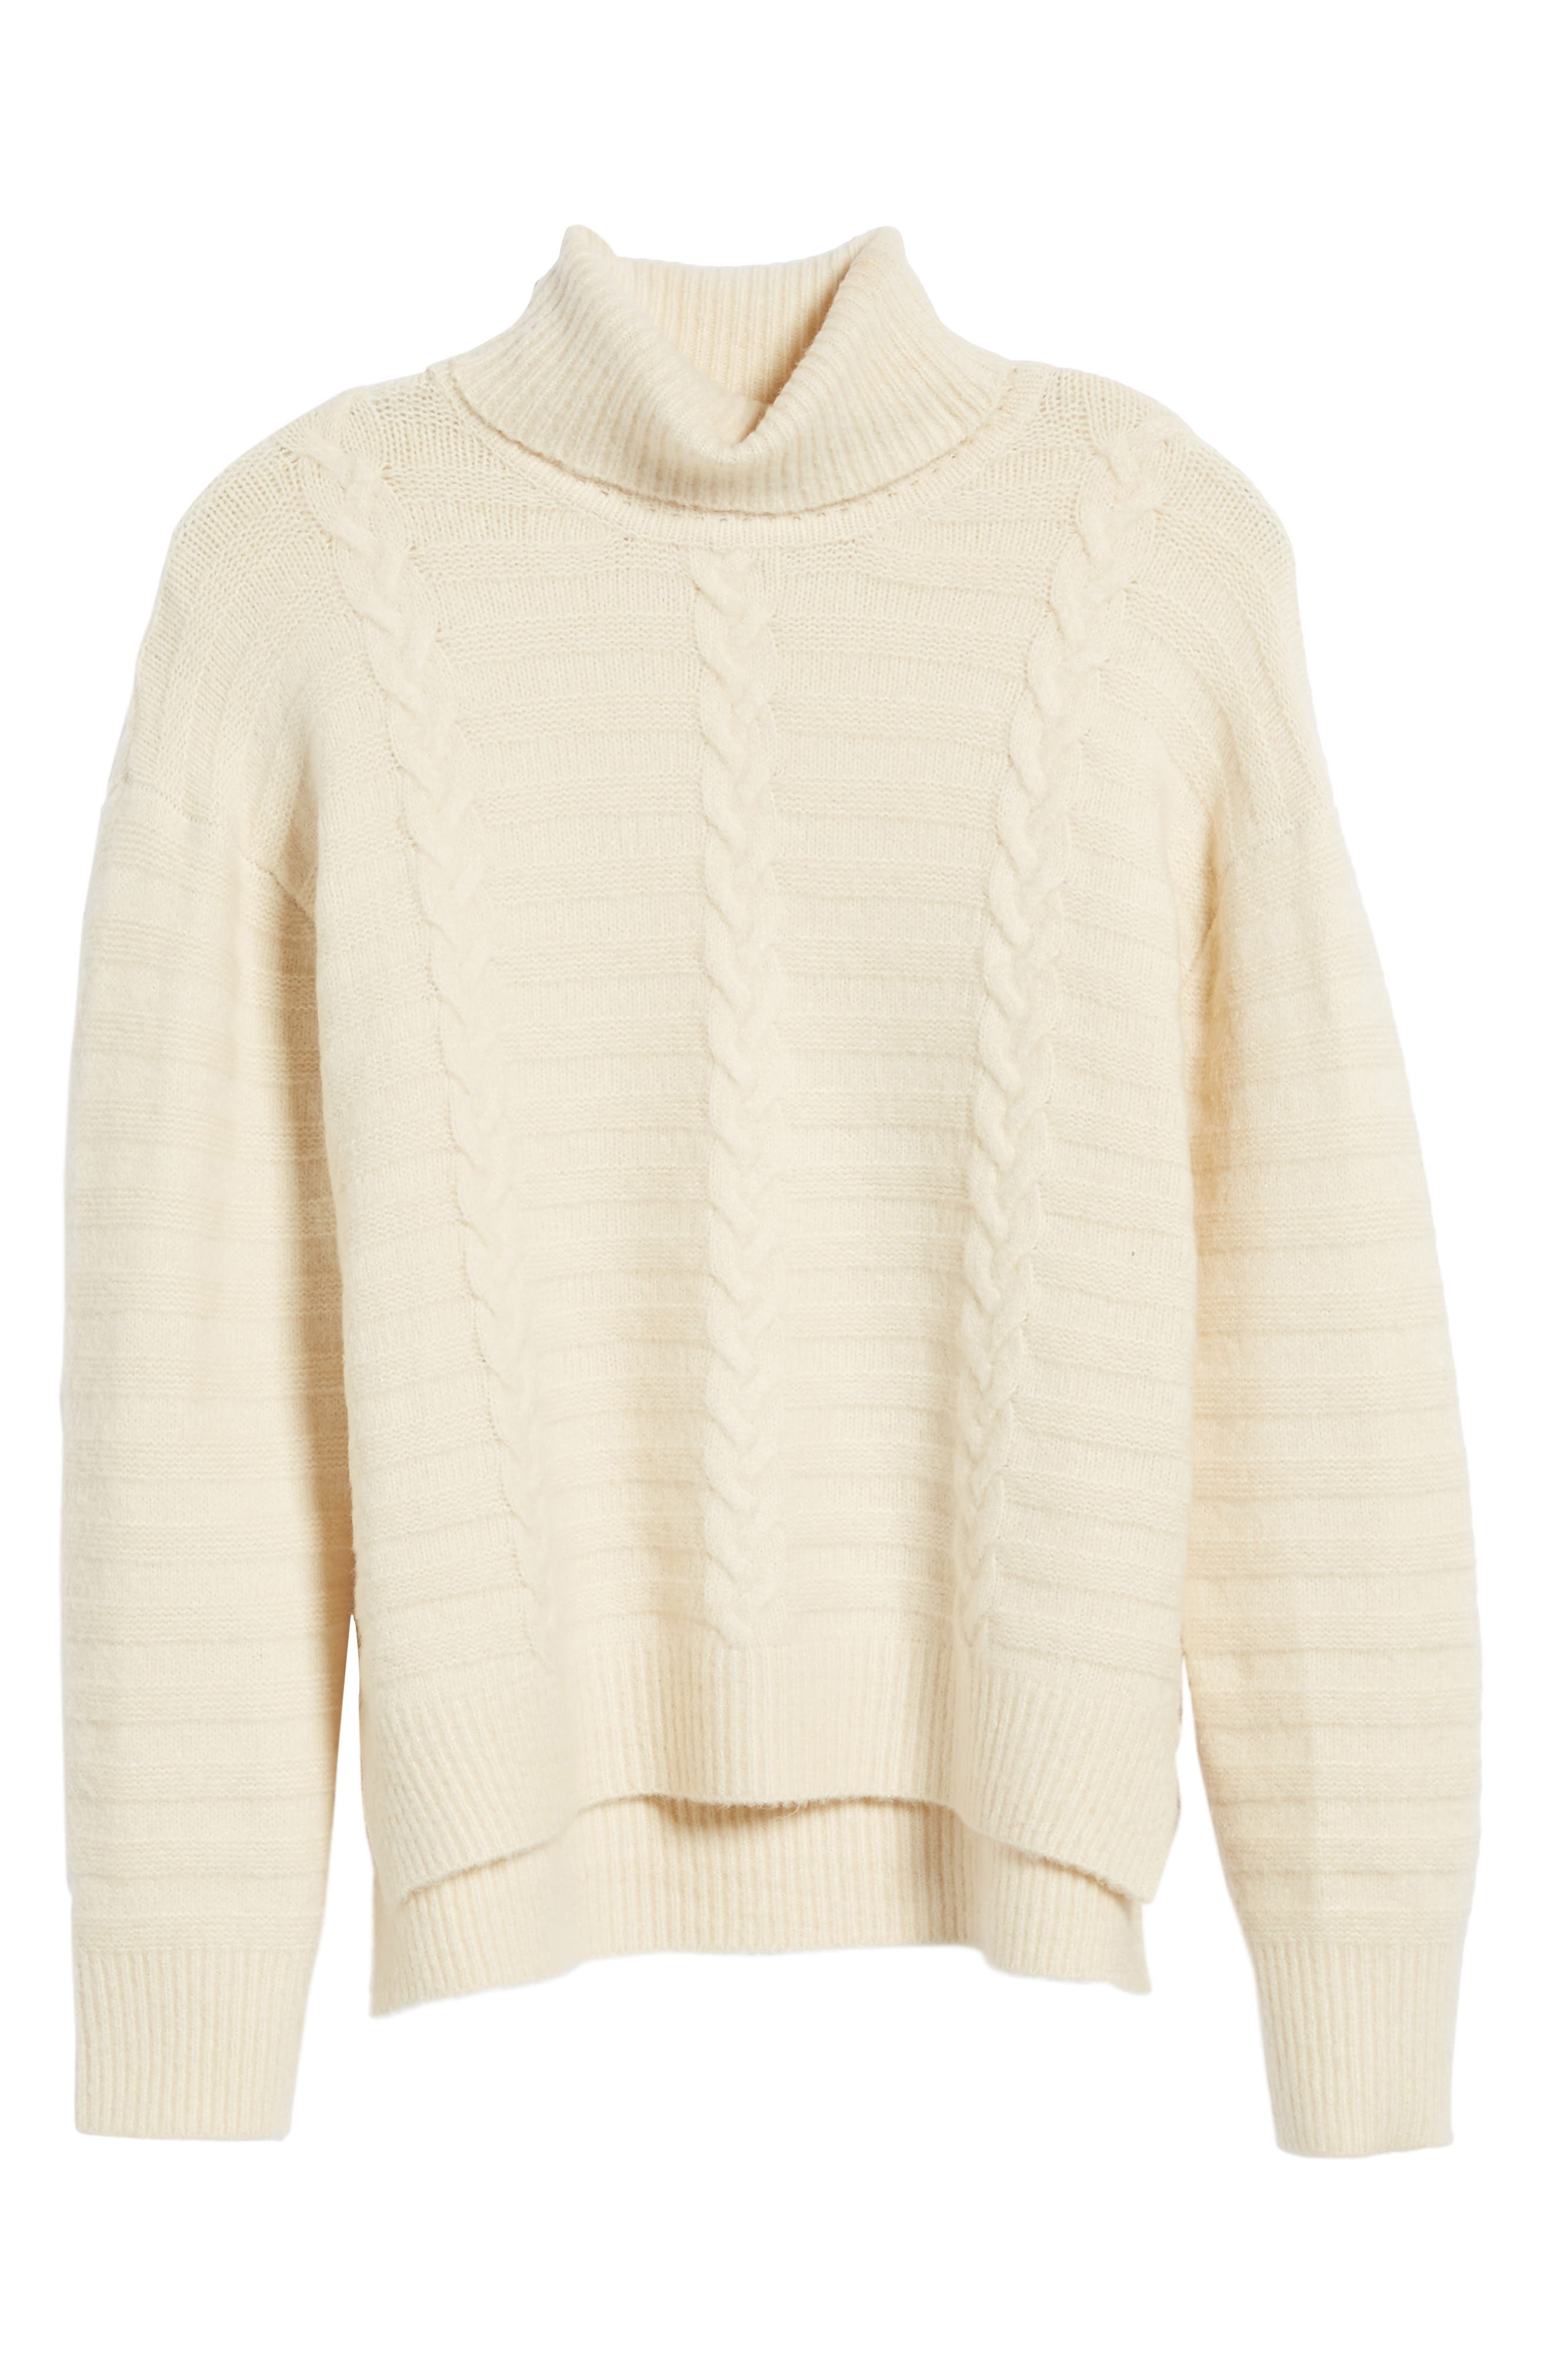 Turtleneck Sweater,                             Alternate thumbnail 6, color,                             900